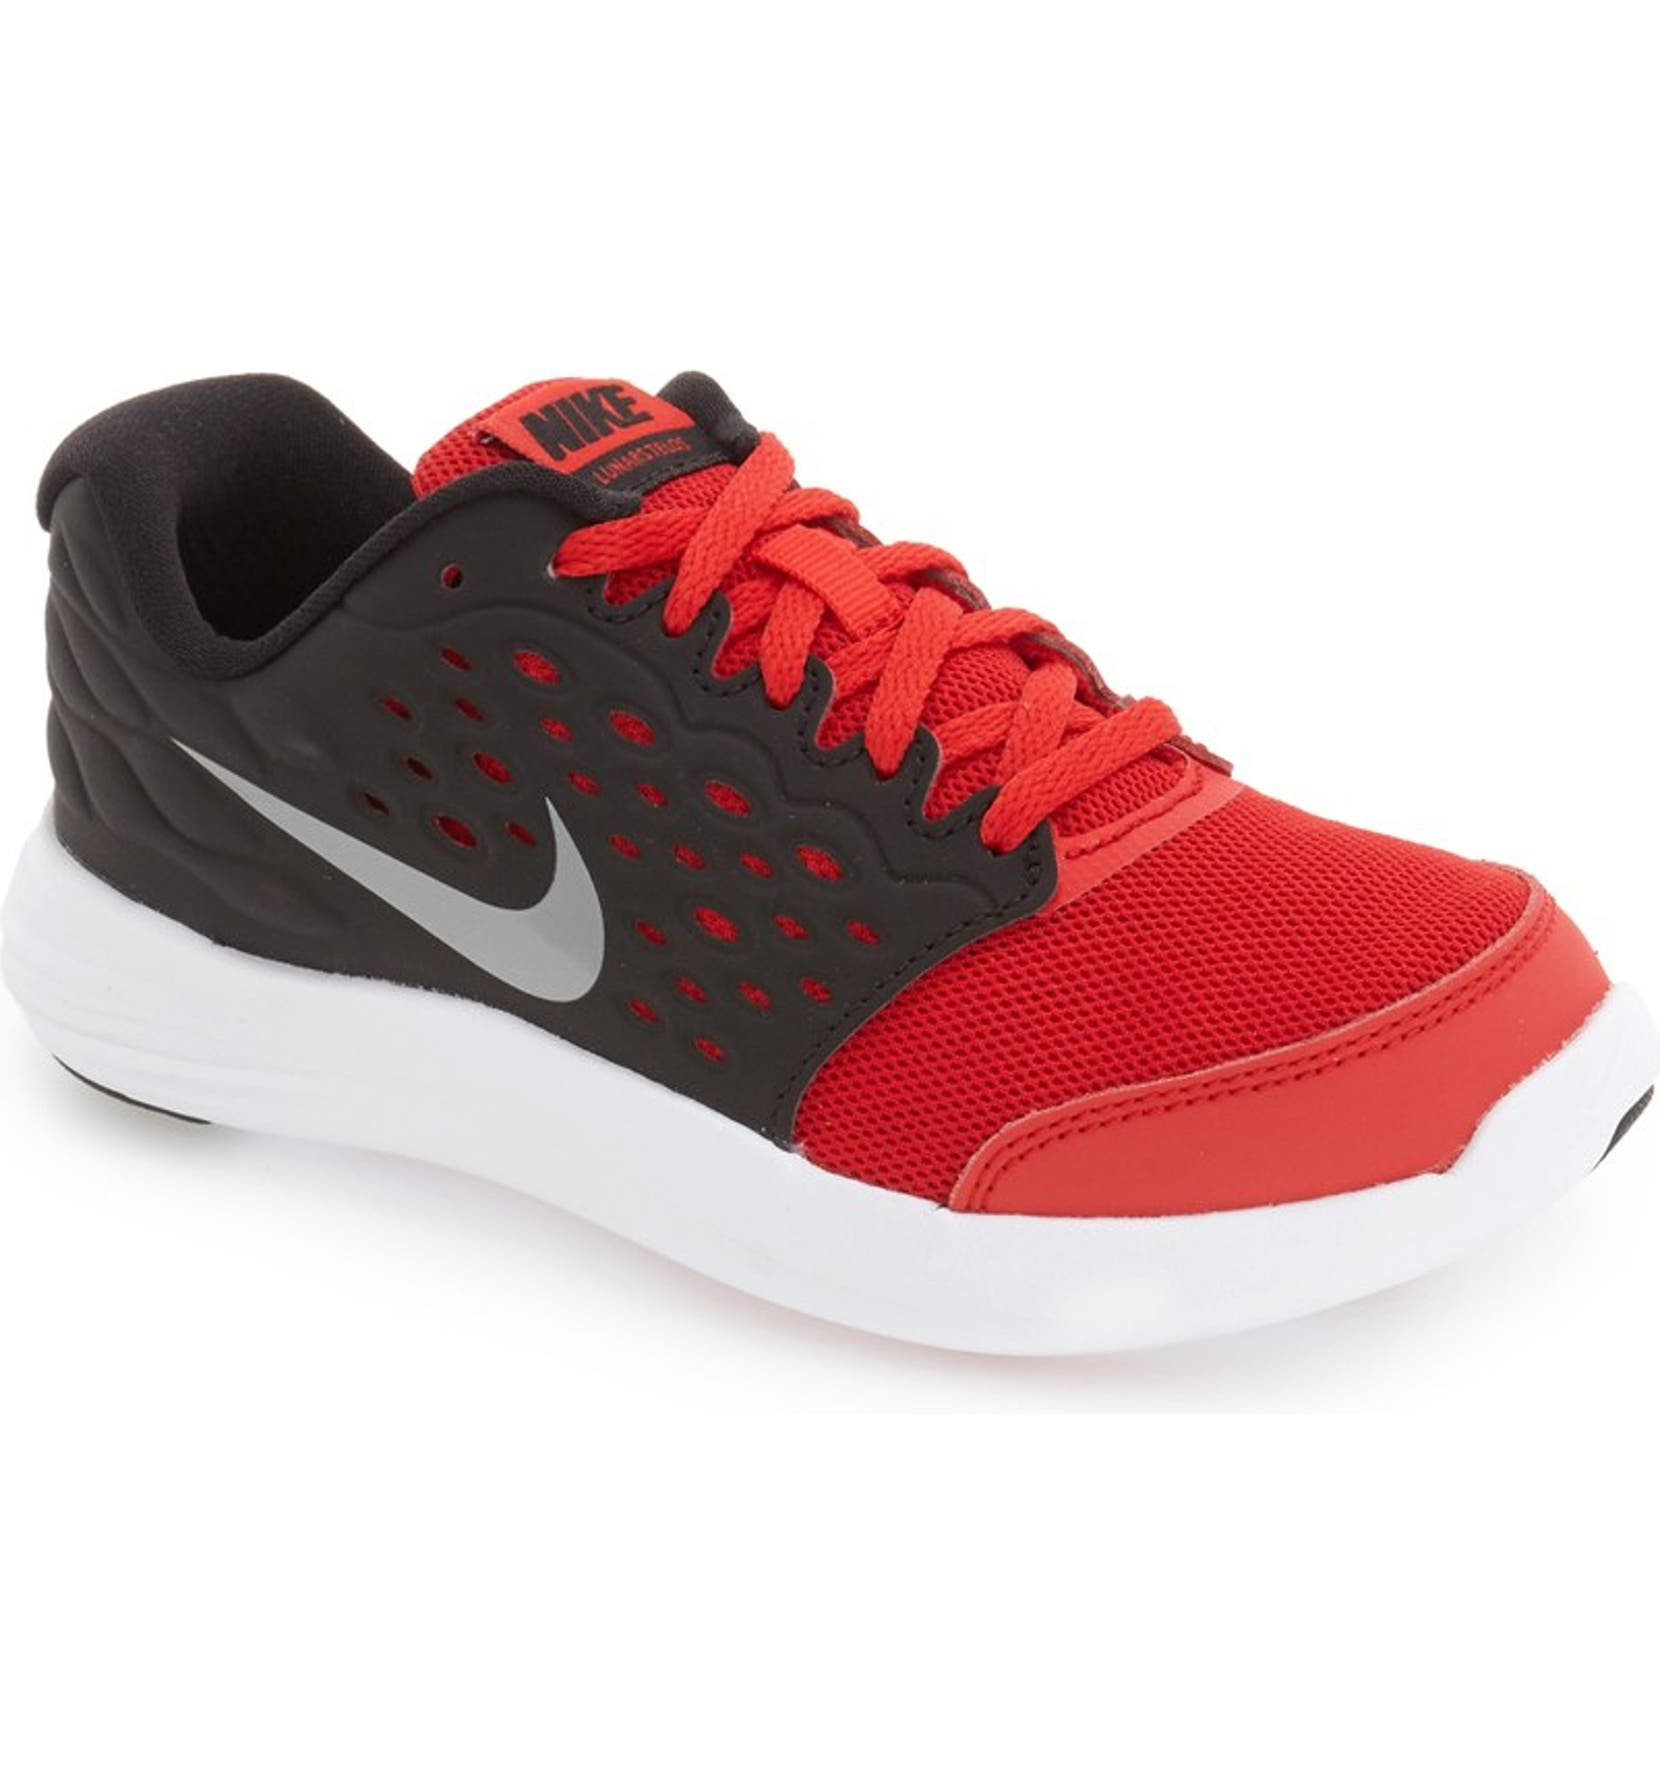 new product 97d99 537a9 Nike Lunarstelos Sneaker (Walker, Toddler, Little Kid   Big Kid)   Nordstrom